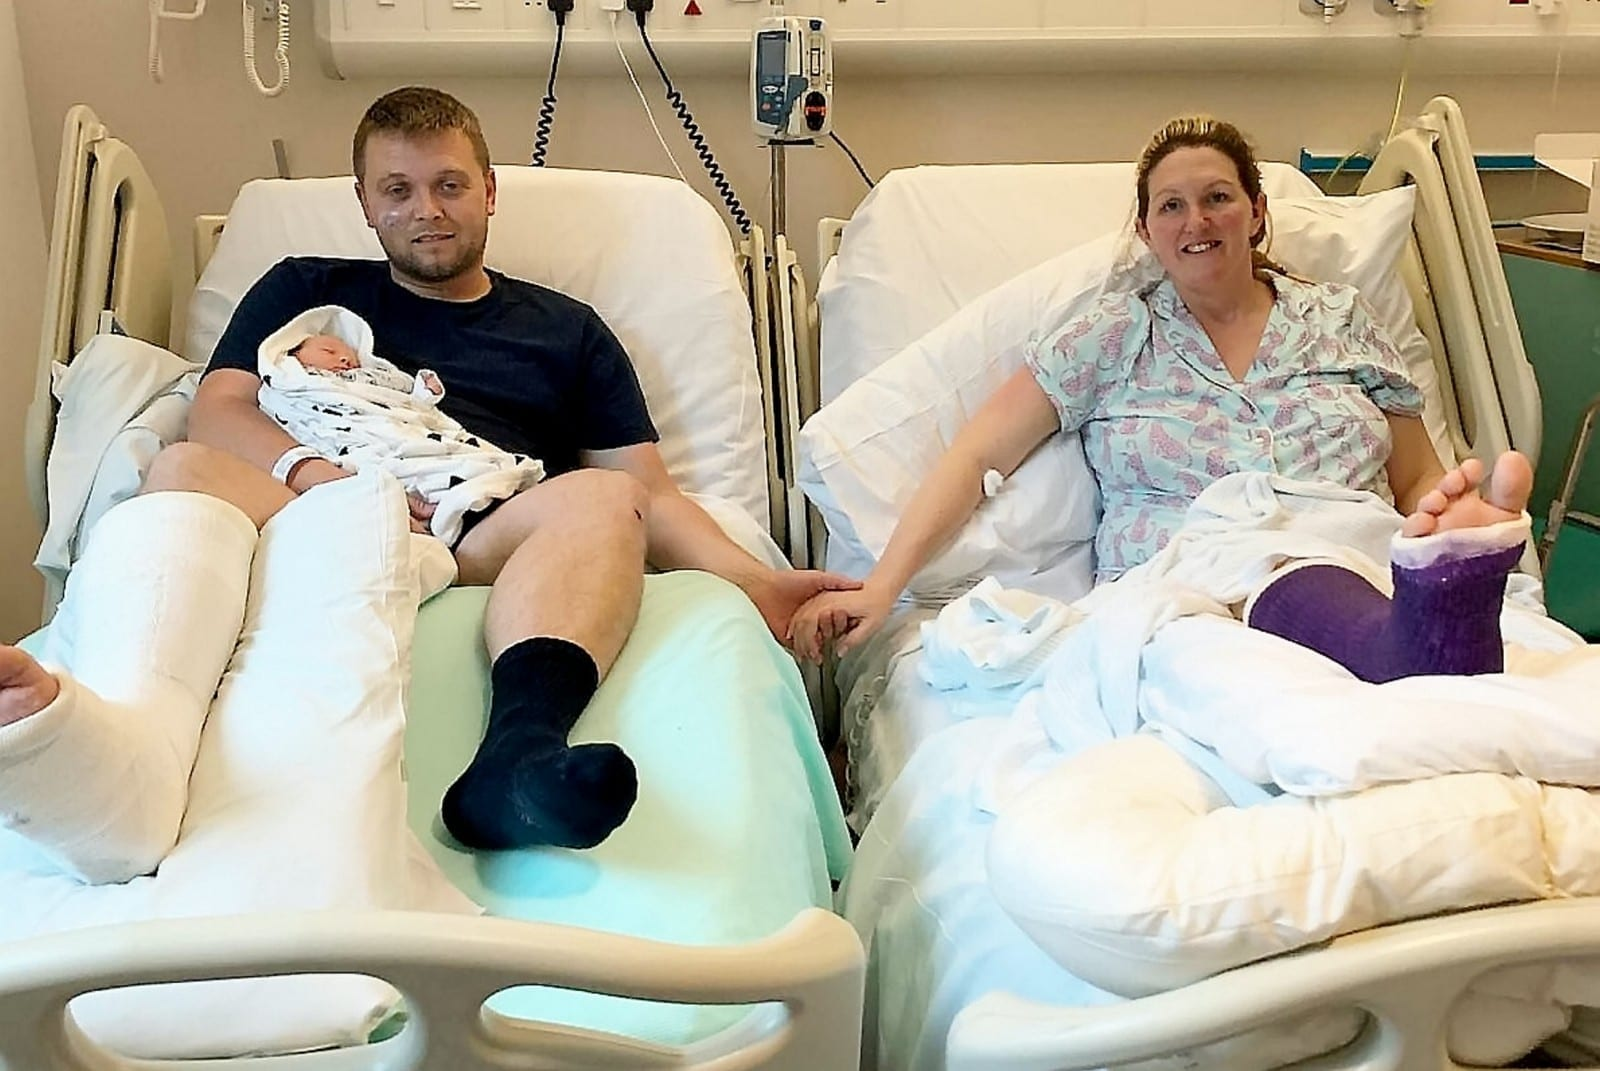 Baby Born By C-Section After Both Parents Are Involved In Car Crash On The Way To Hospital